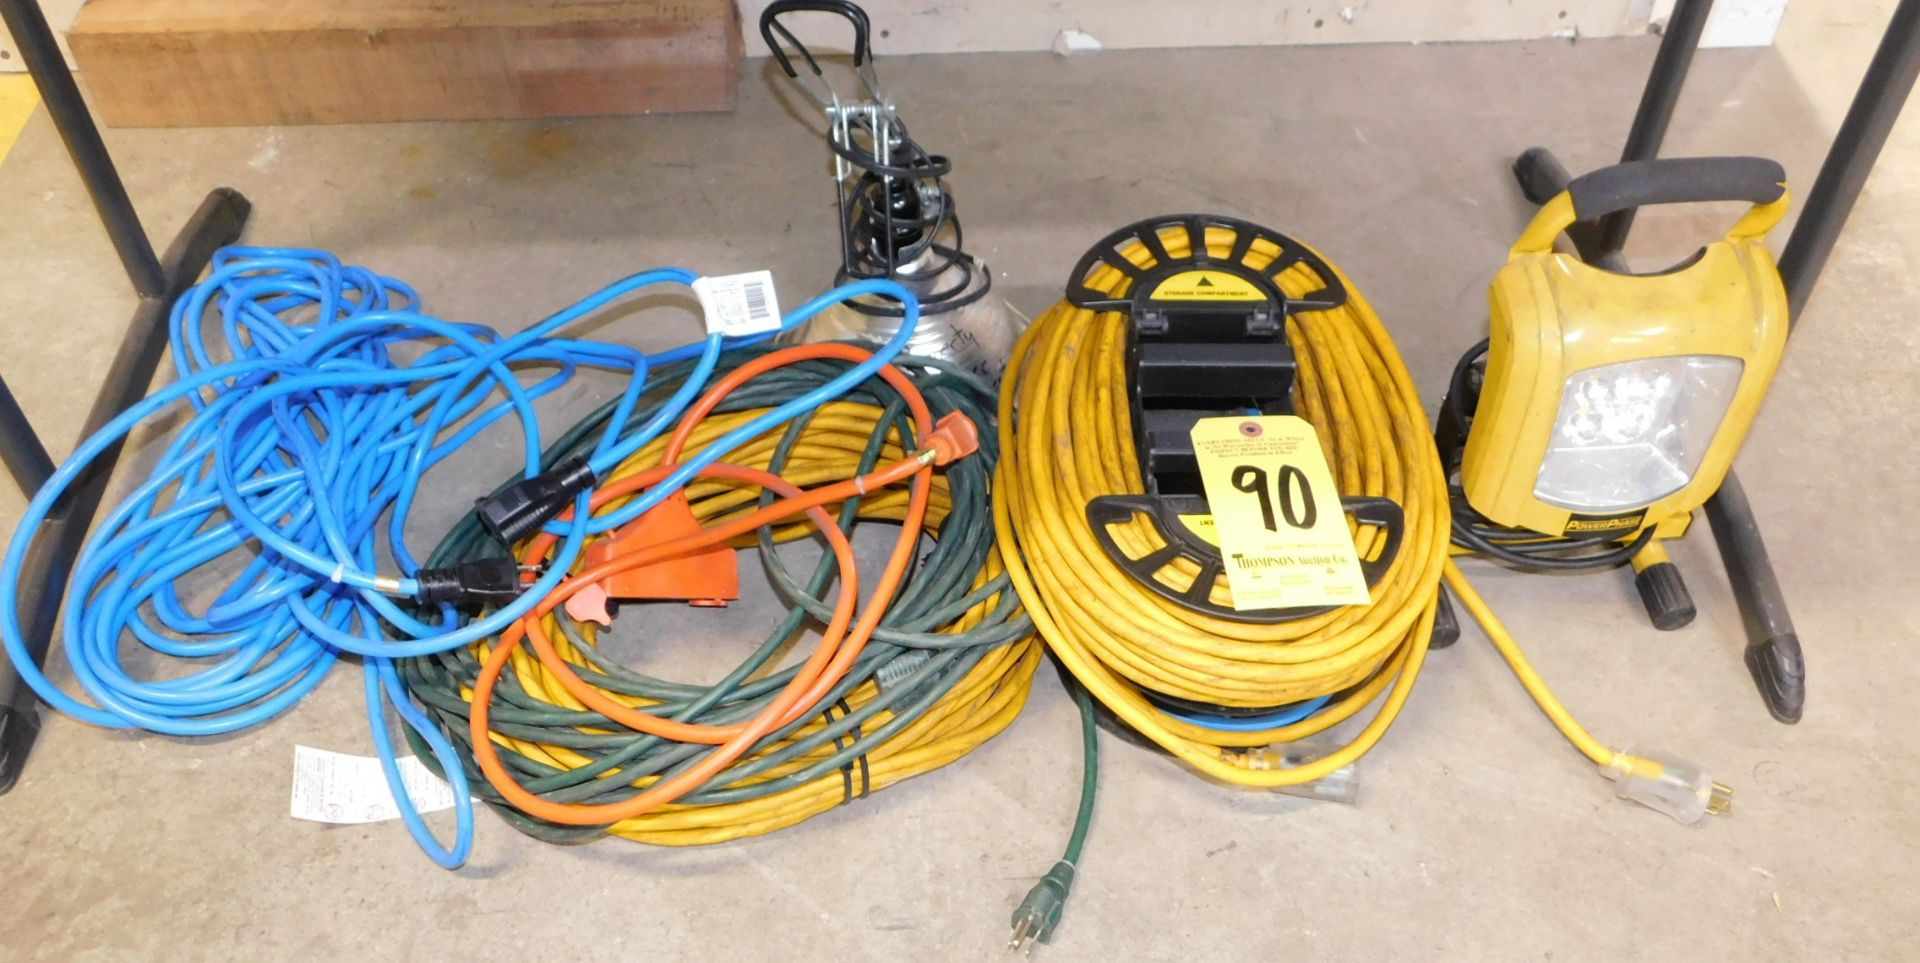 Lot 90 - Extension Cords and Work Lights, Lot Location 3204 Olympia Dr. A, Lafayette, IN 47909